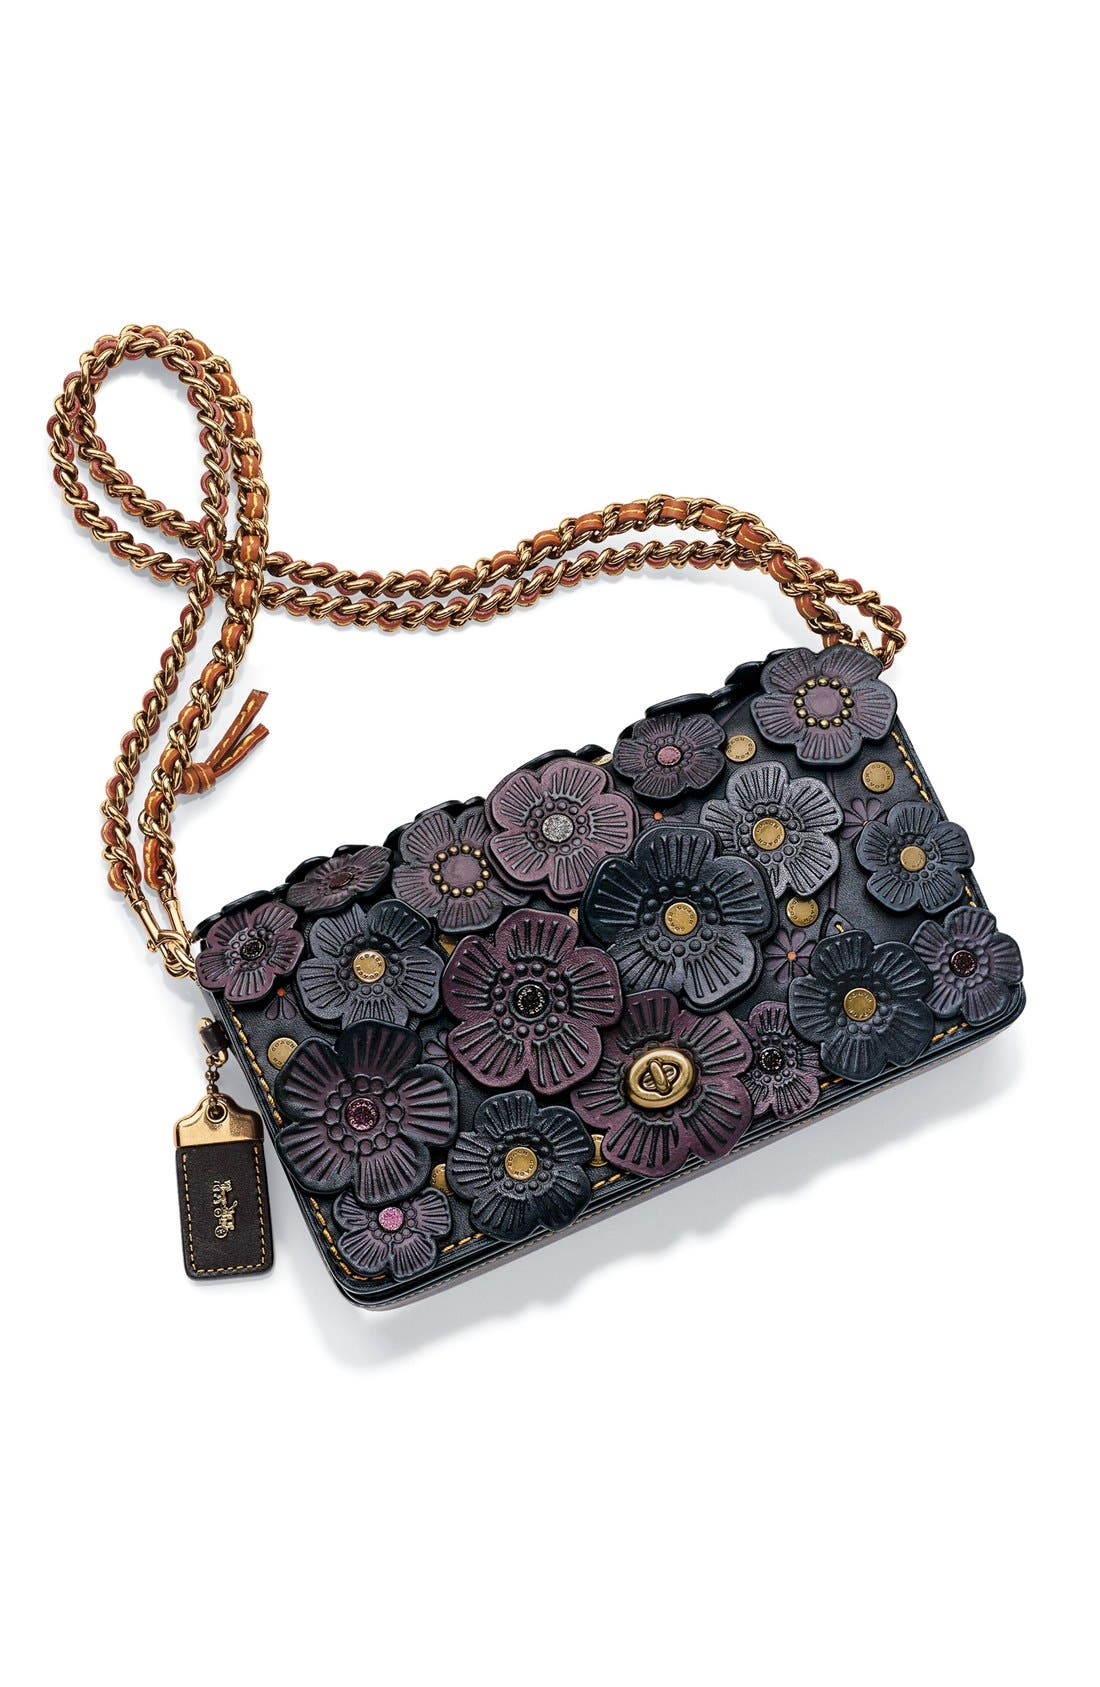 'Dinky' Flower Appliqué Leather Crossbody Bag,                             Alternate thumbnail 7, color,                             020